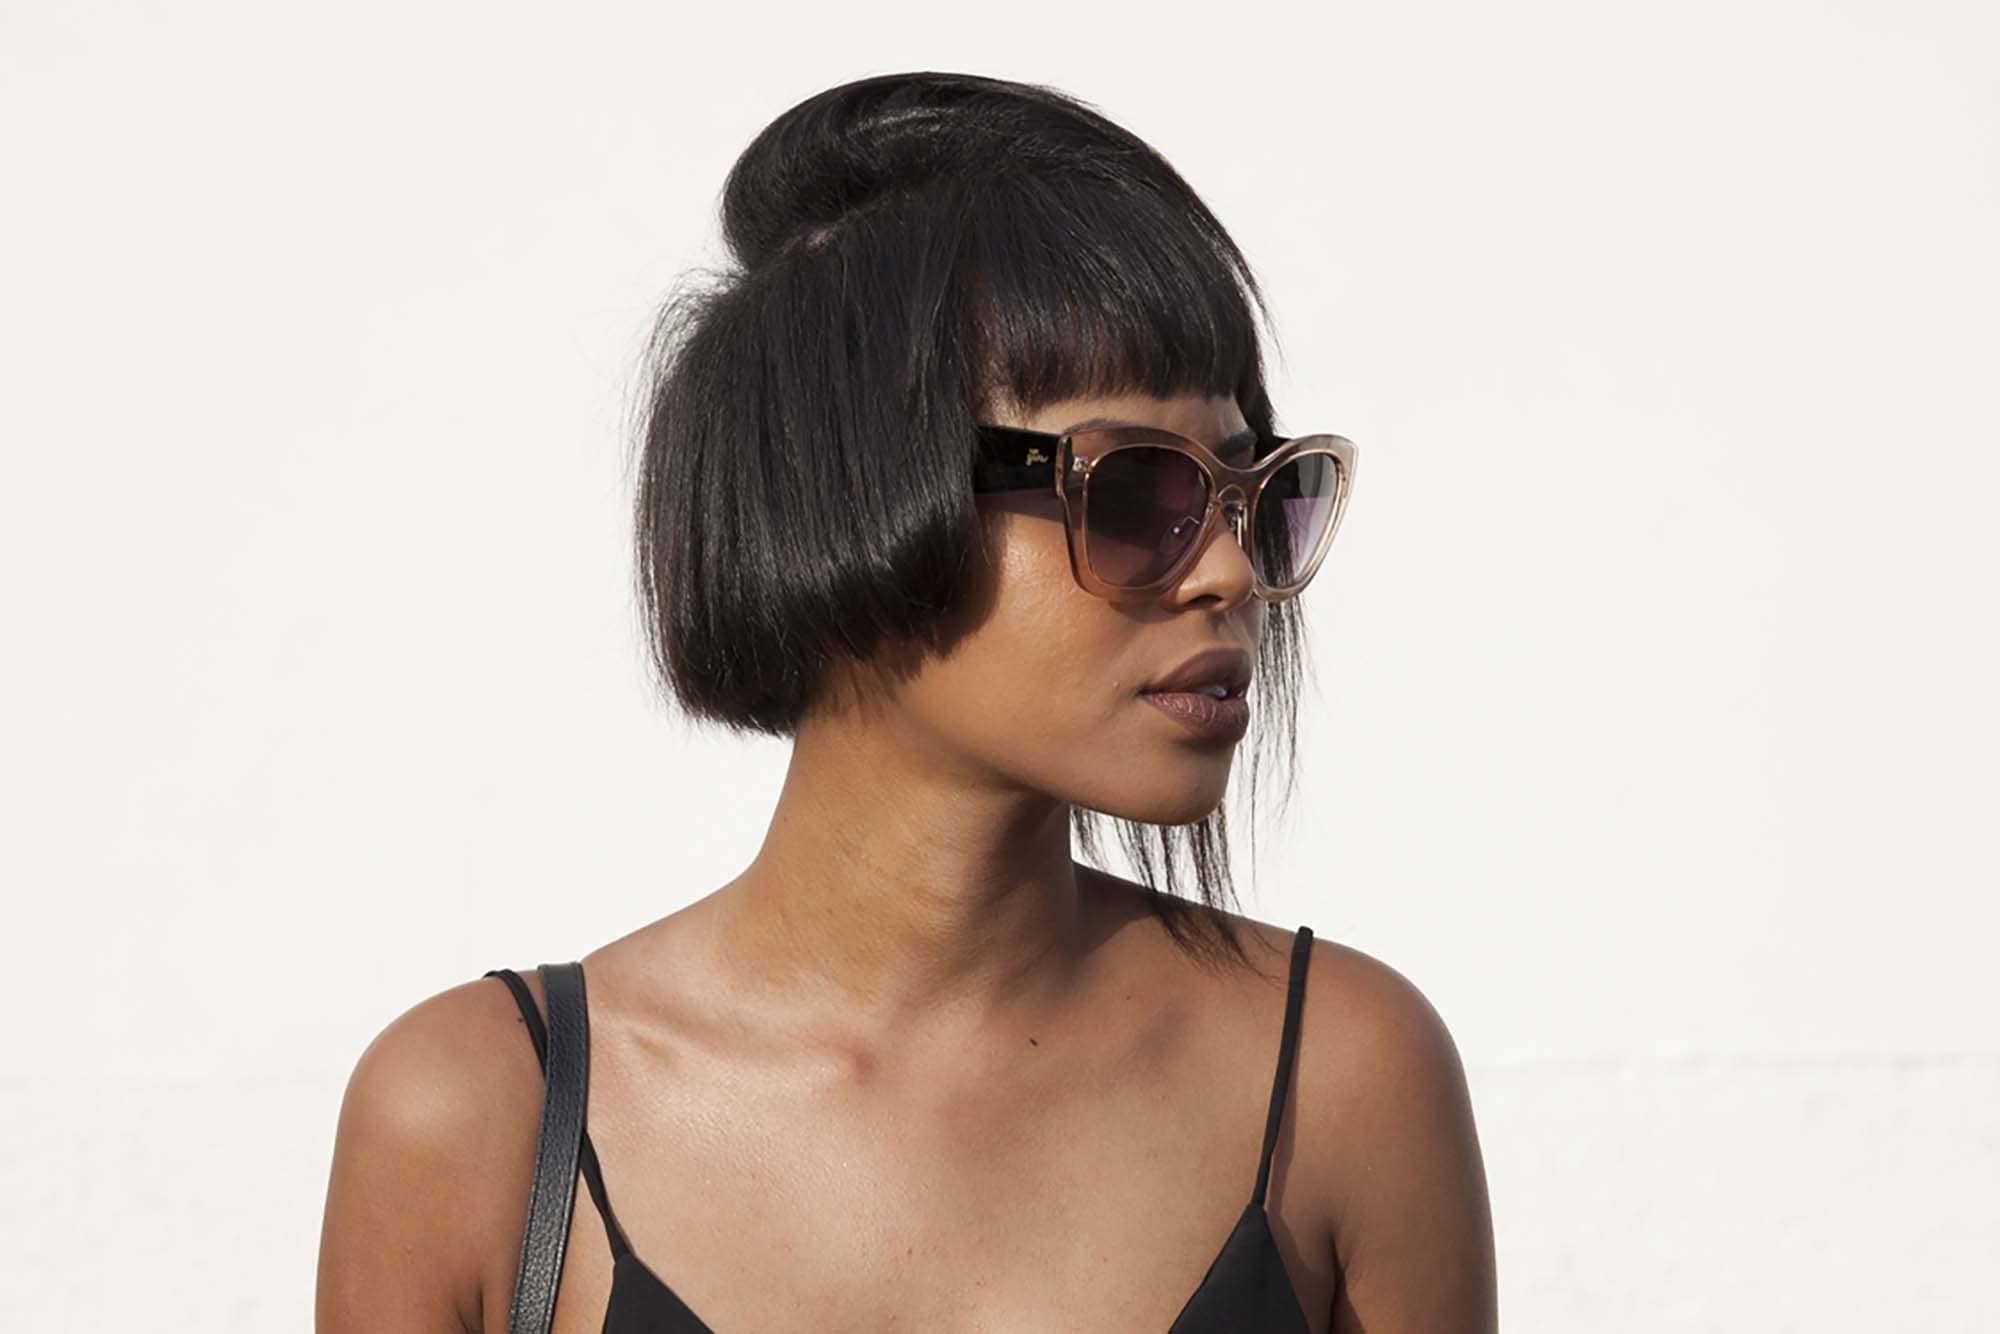 blunt straight hair inspiration and trends straight